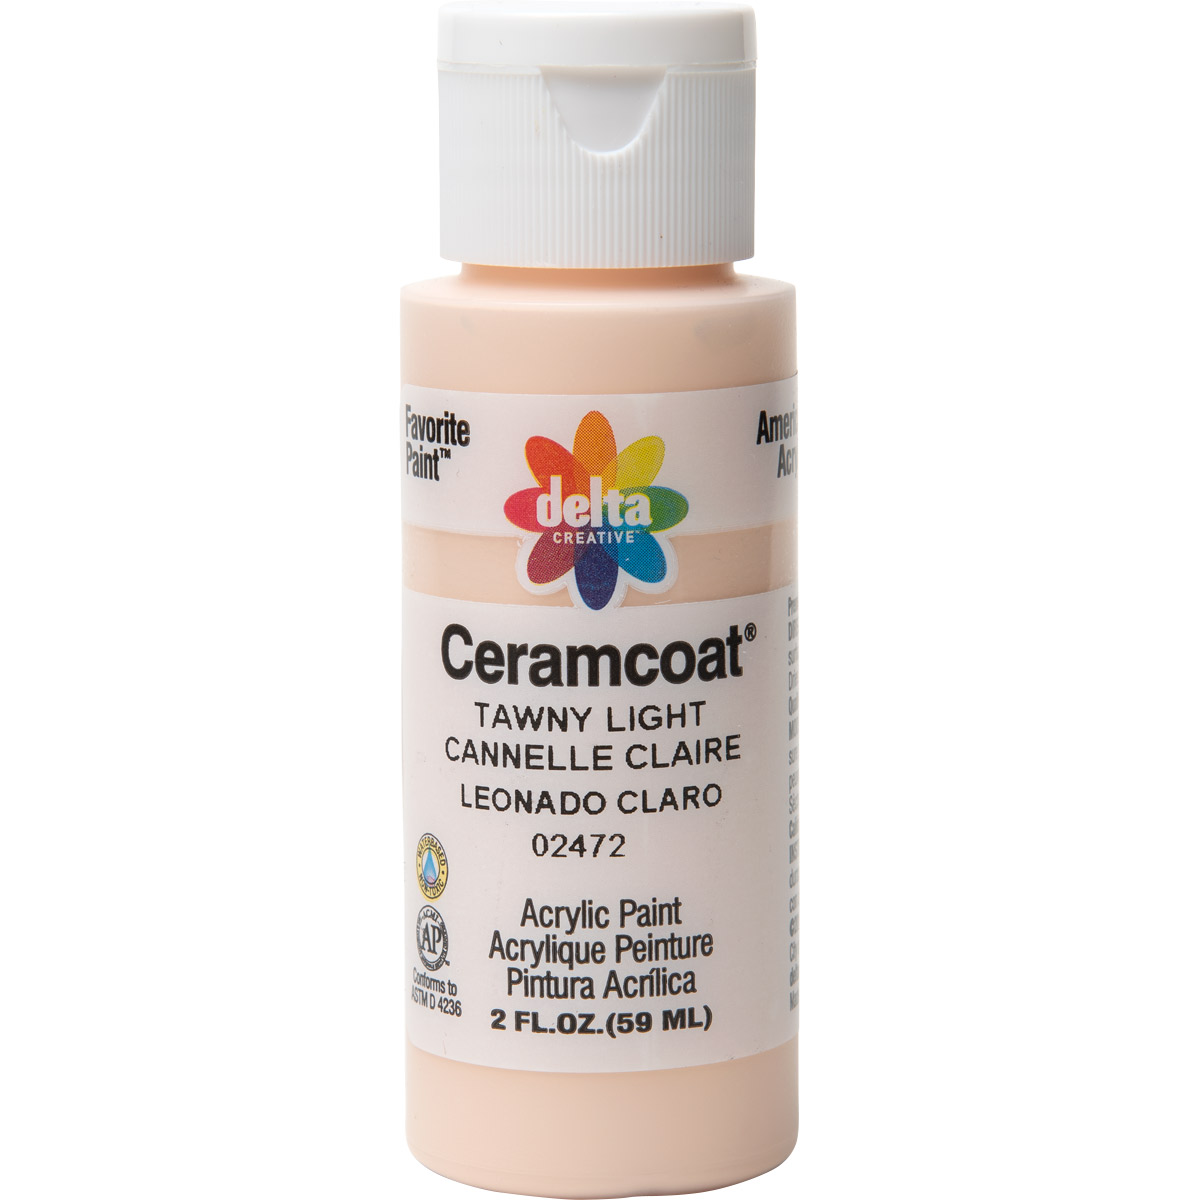 Delta Ceramcoat ® Acrylic Paint - Tawny Light, 2 oz. - 024720202W